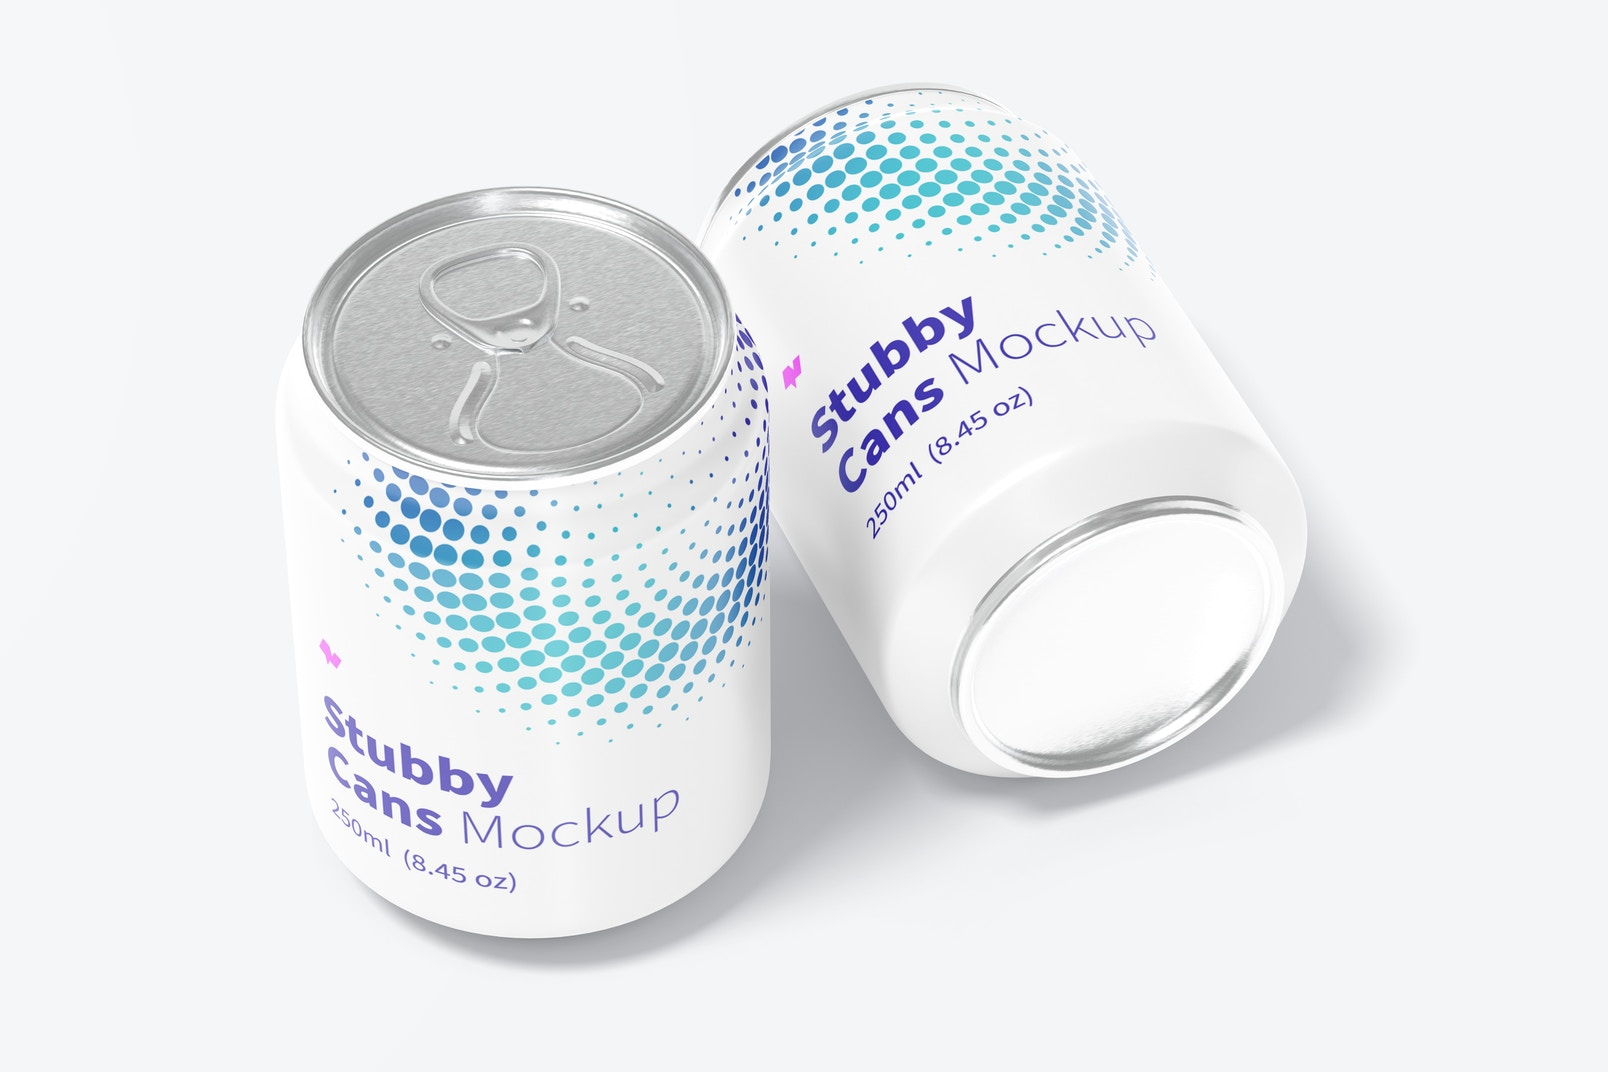 250ml Stubby Cans Mockup